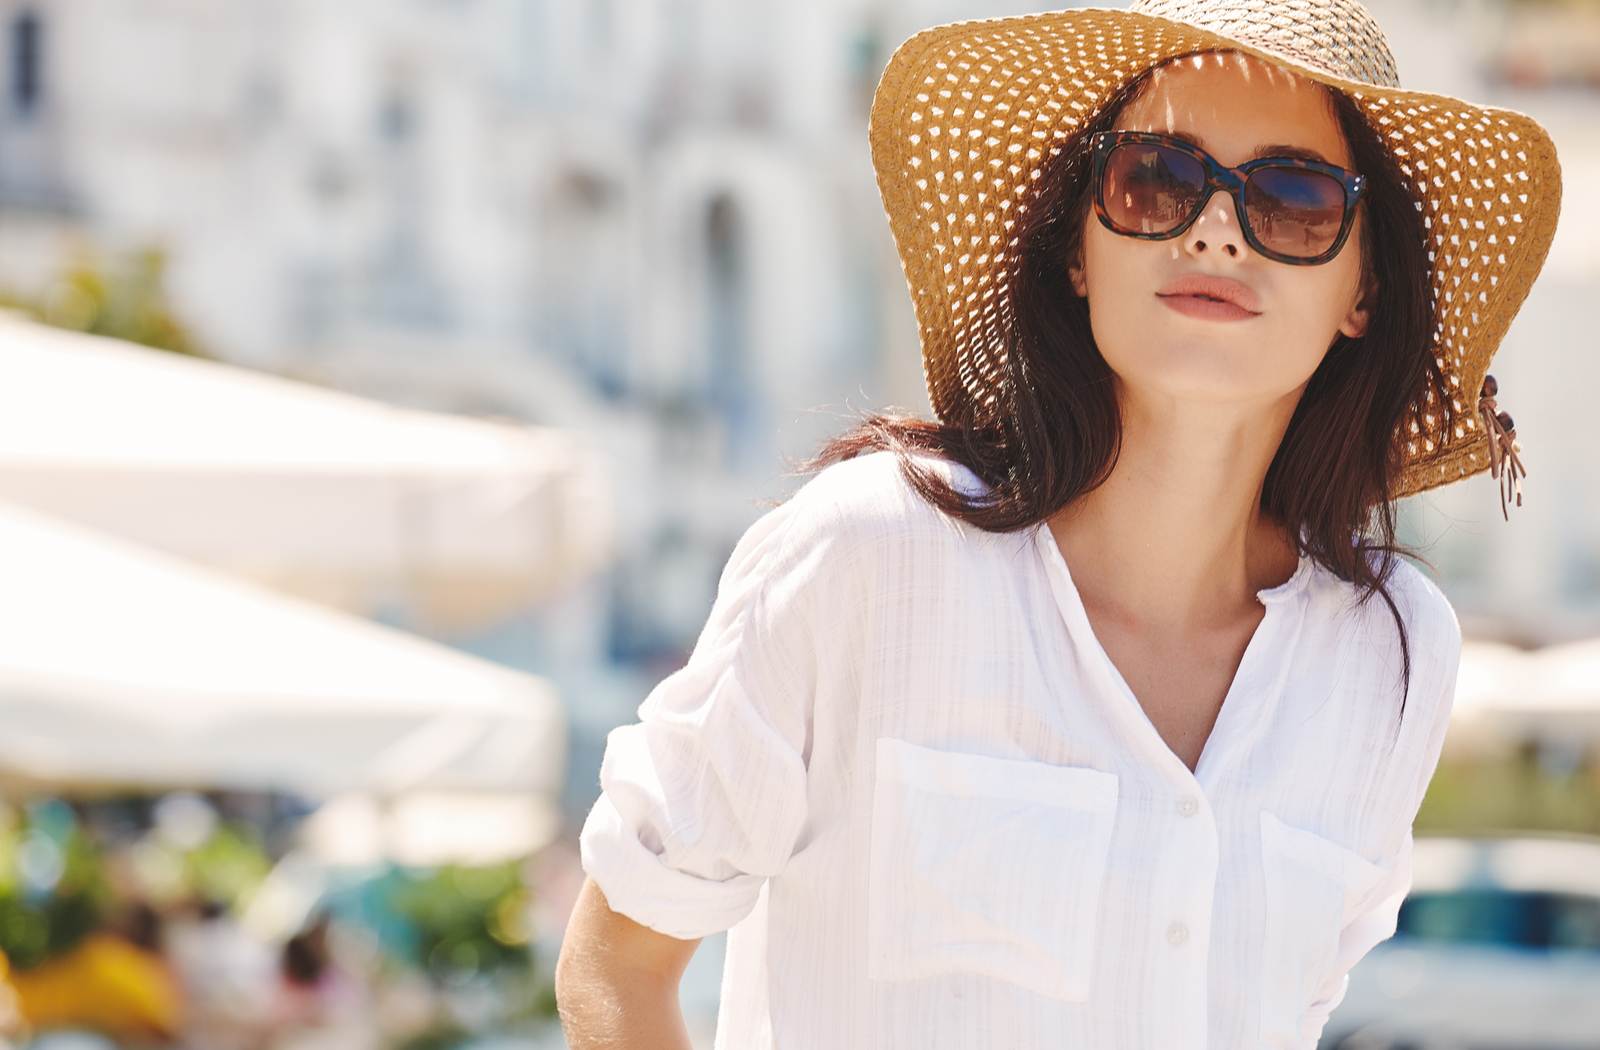 a dark haired woman wearing a floppy wide brimmed hat and sunglasses staring intently at something above the camera